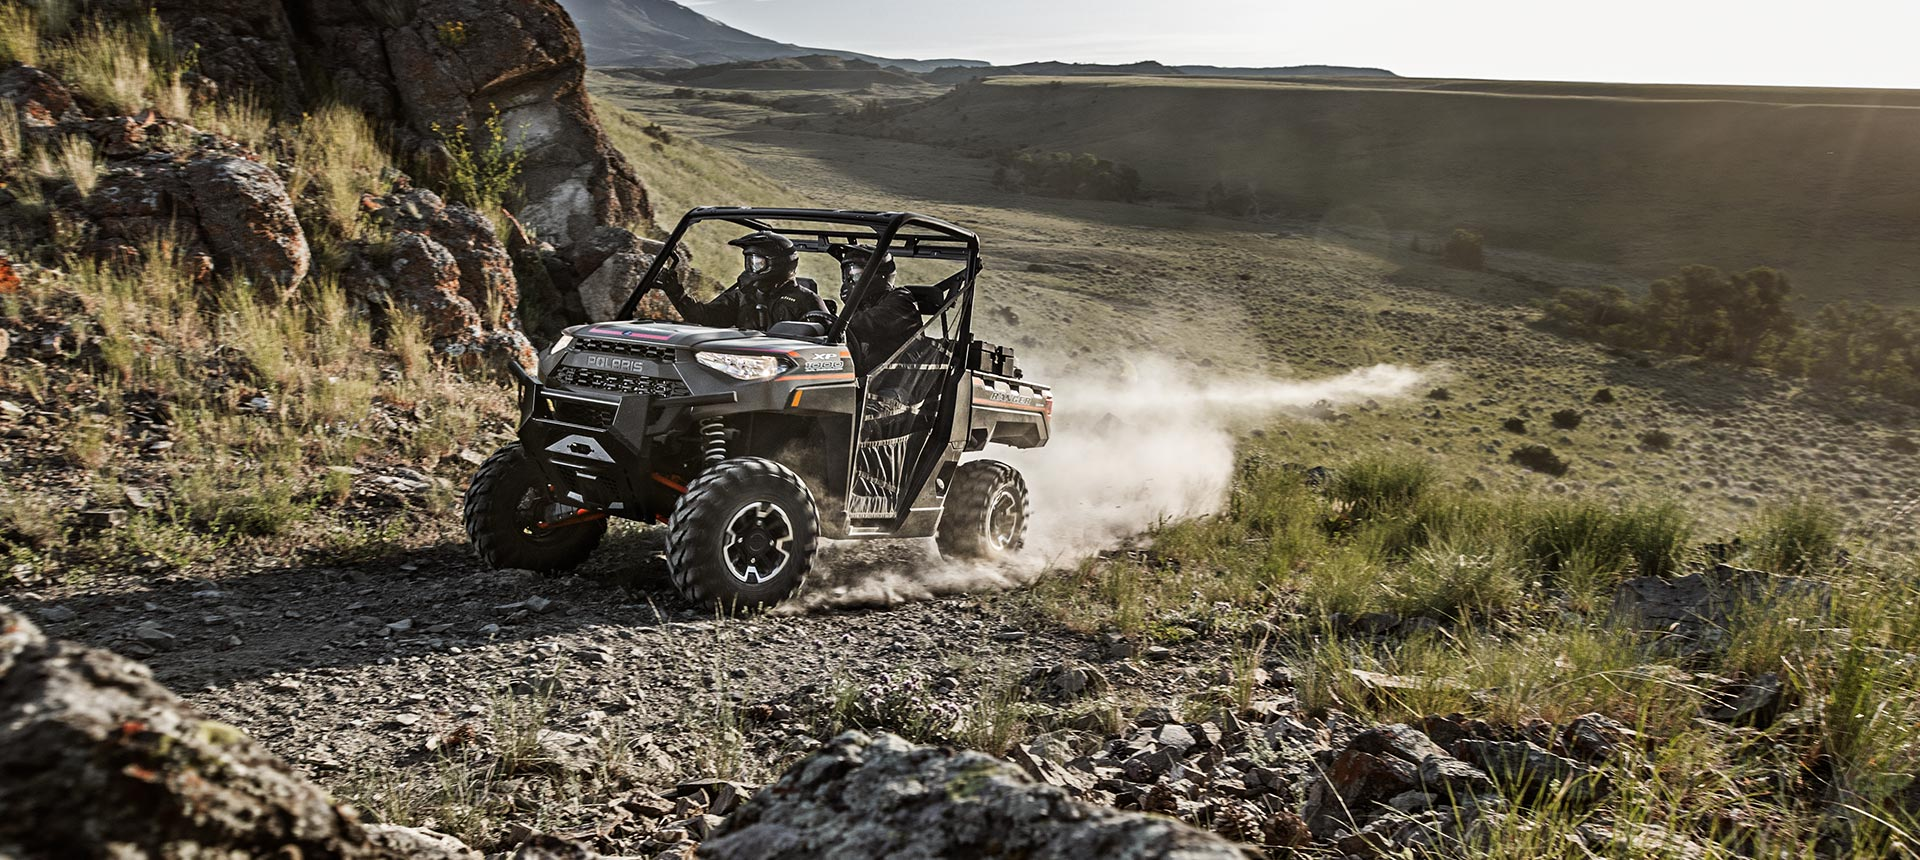 2019 Polaris Ranger XP 1000 EPS in Monroe, Michigan - Photo 3